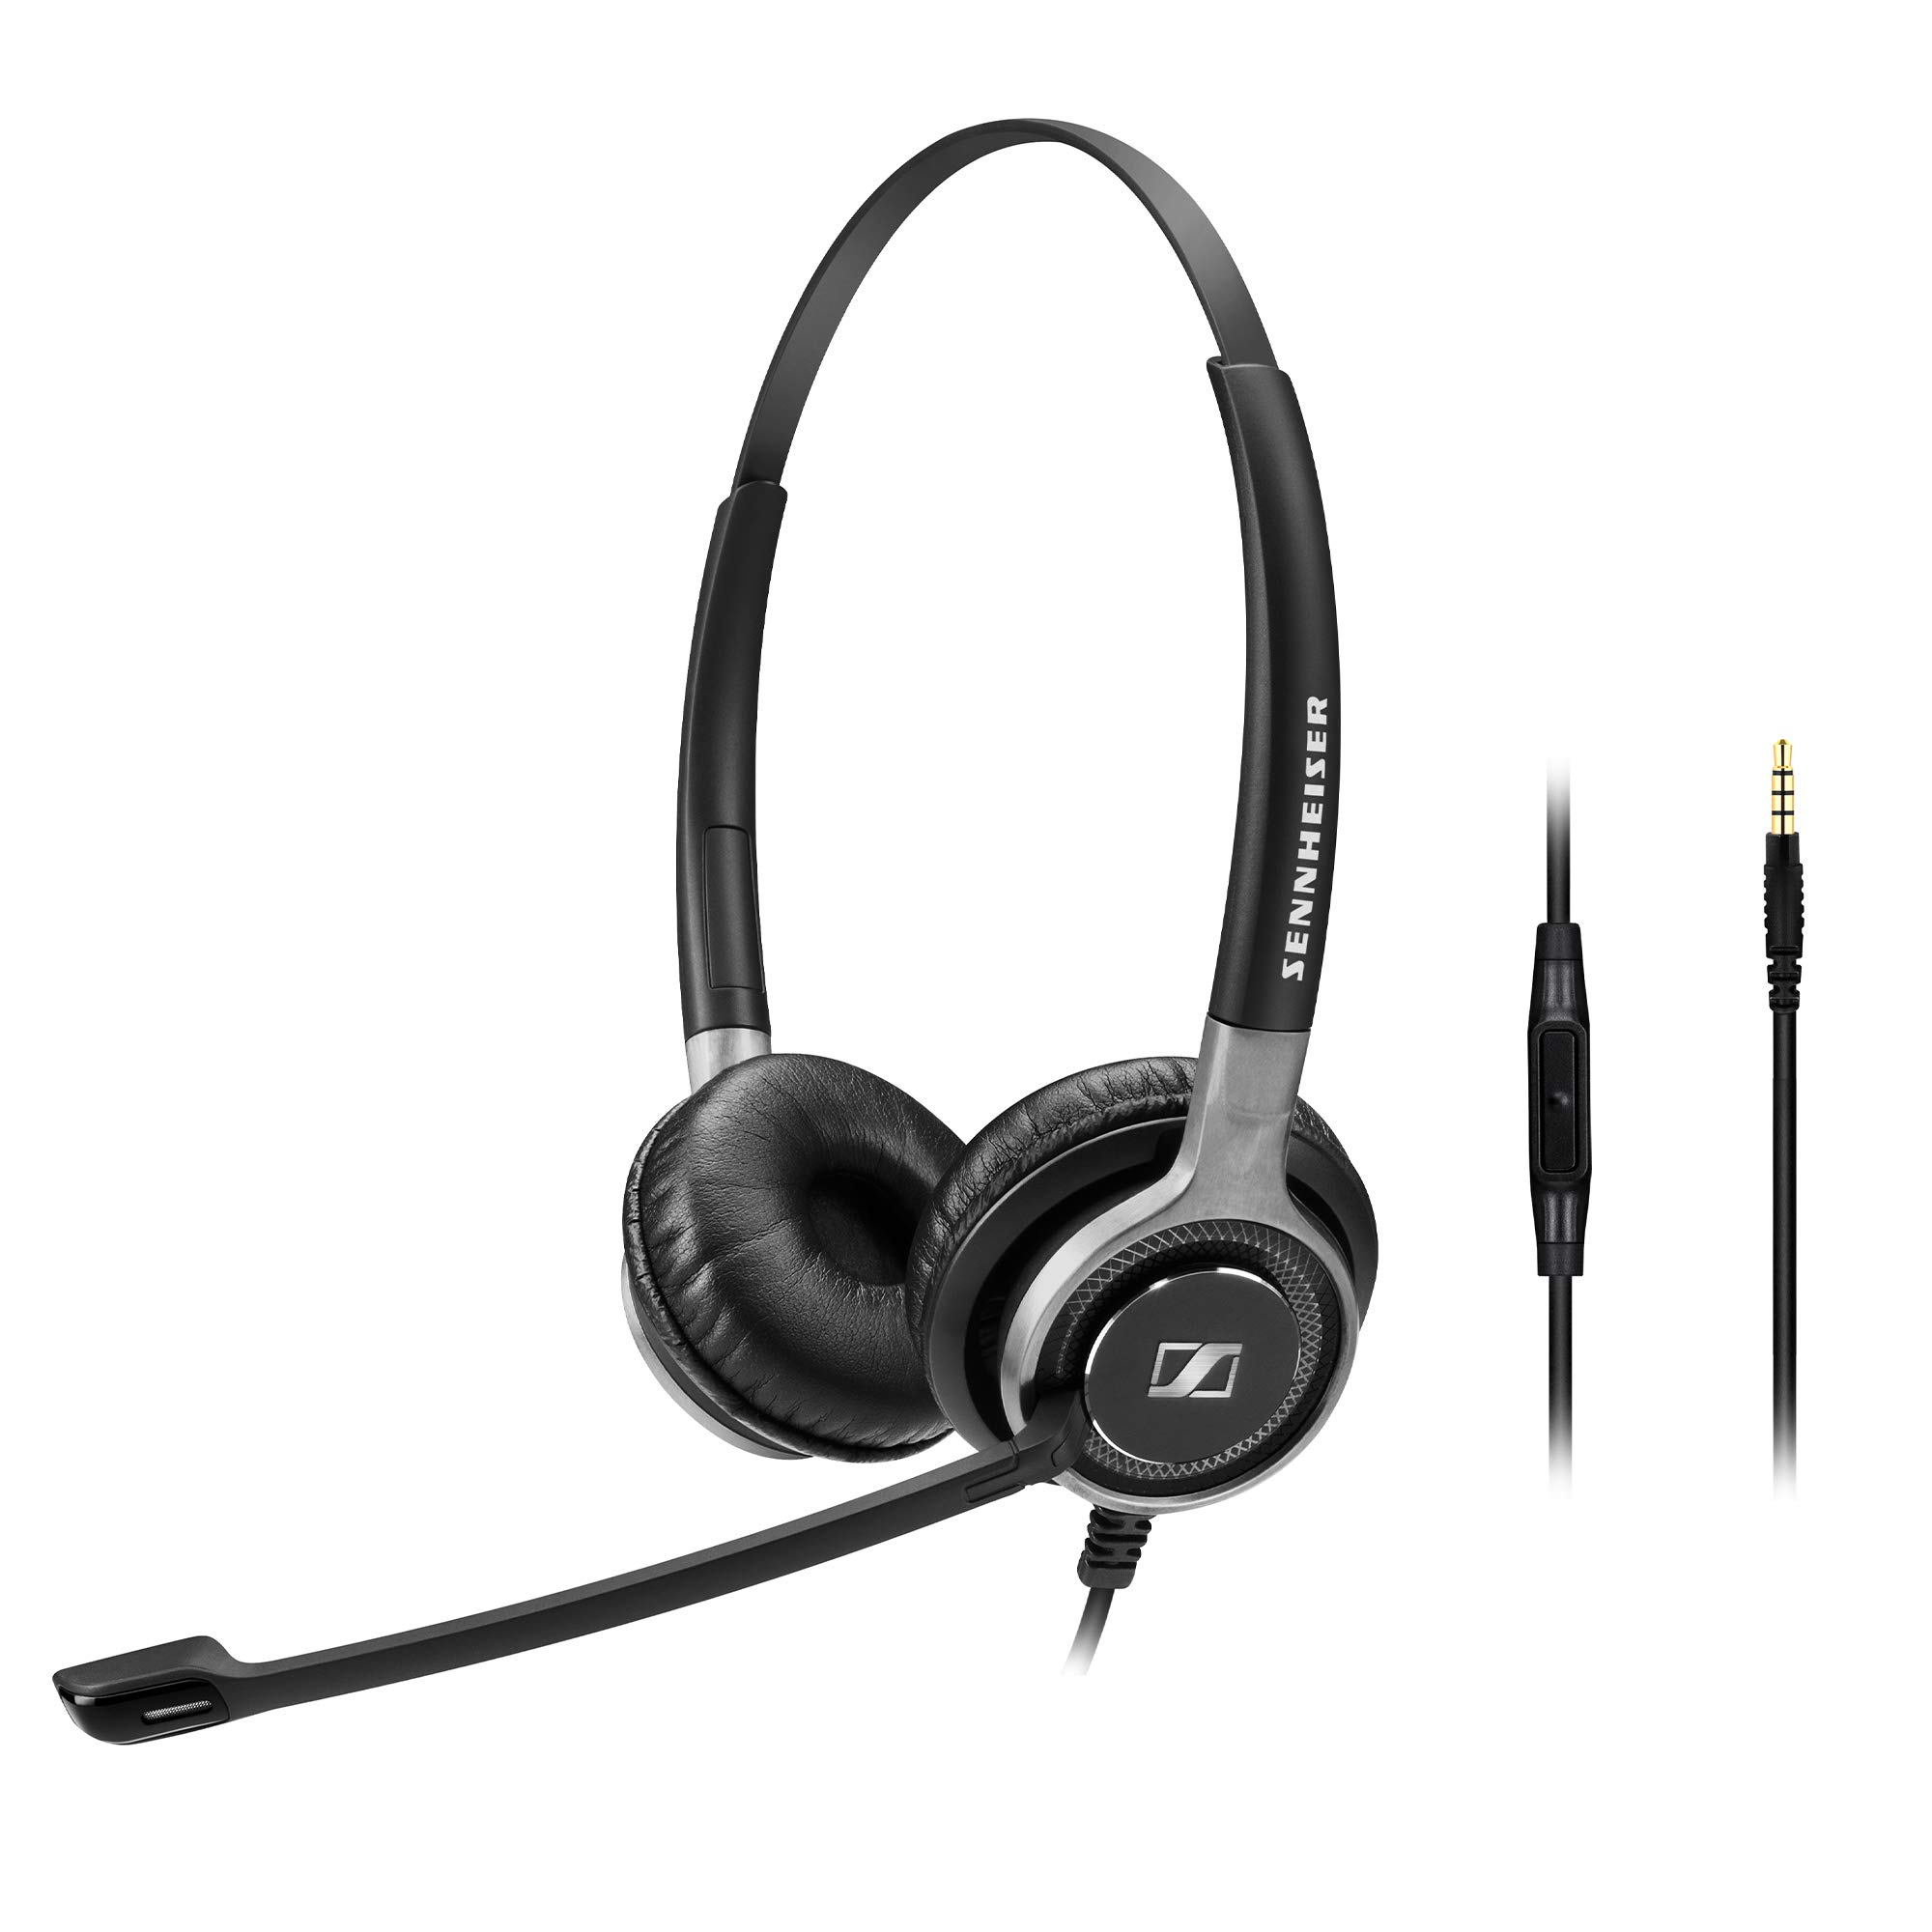 Sennheiser SC 665 (507256) - Double-Sided Business Headset | For Mobile Phone and Tablet Connection | with HD Sound & Ultra Noise-Cancelling Microphone (Black) by Sennheiser Enterprise Solution